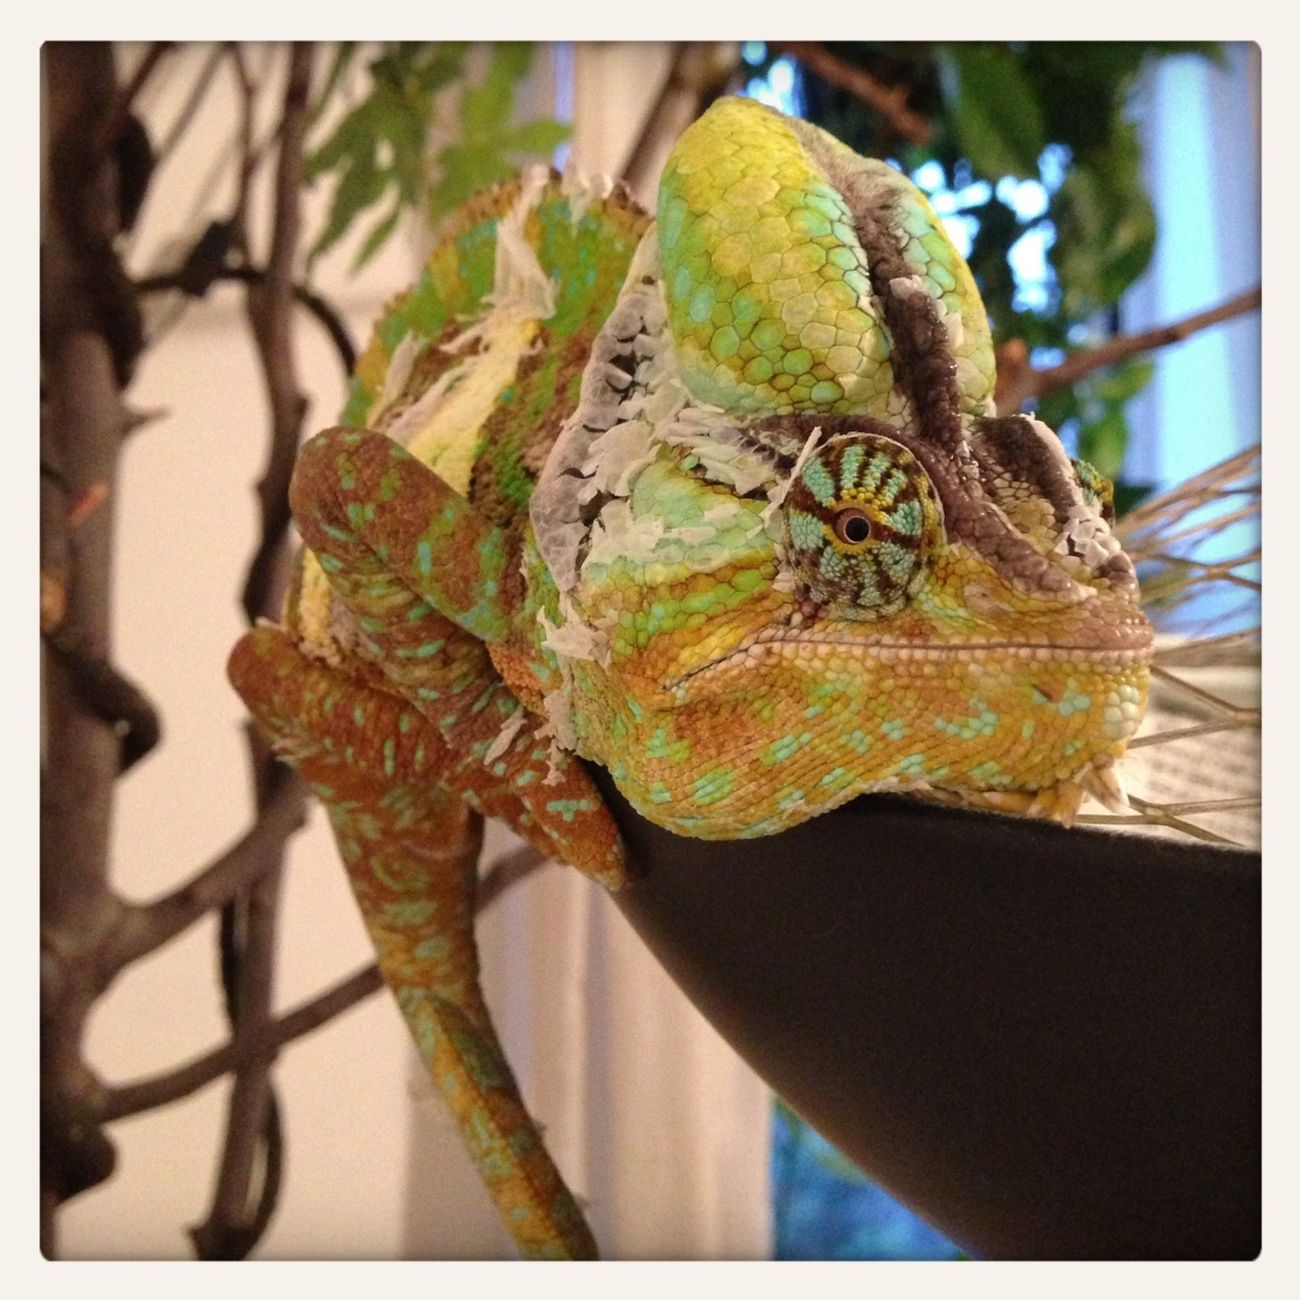 Chameleon Reptiles #colors #color #colorful #TagsForLikes #red #orange #yellow #green #blue #indigo #violet #beautiful #rainbow #rainbowcolors #col #love #cute #pretty #beautiful